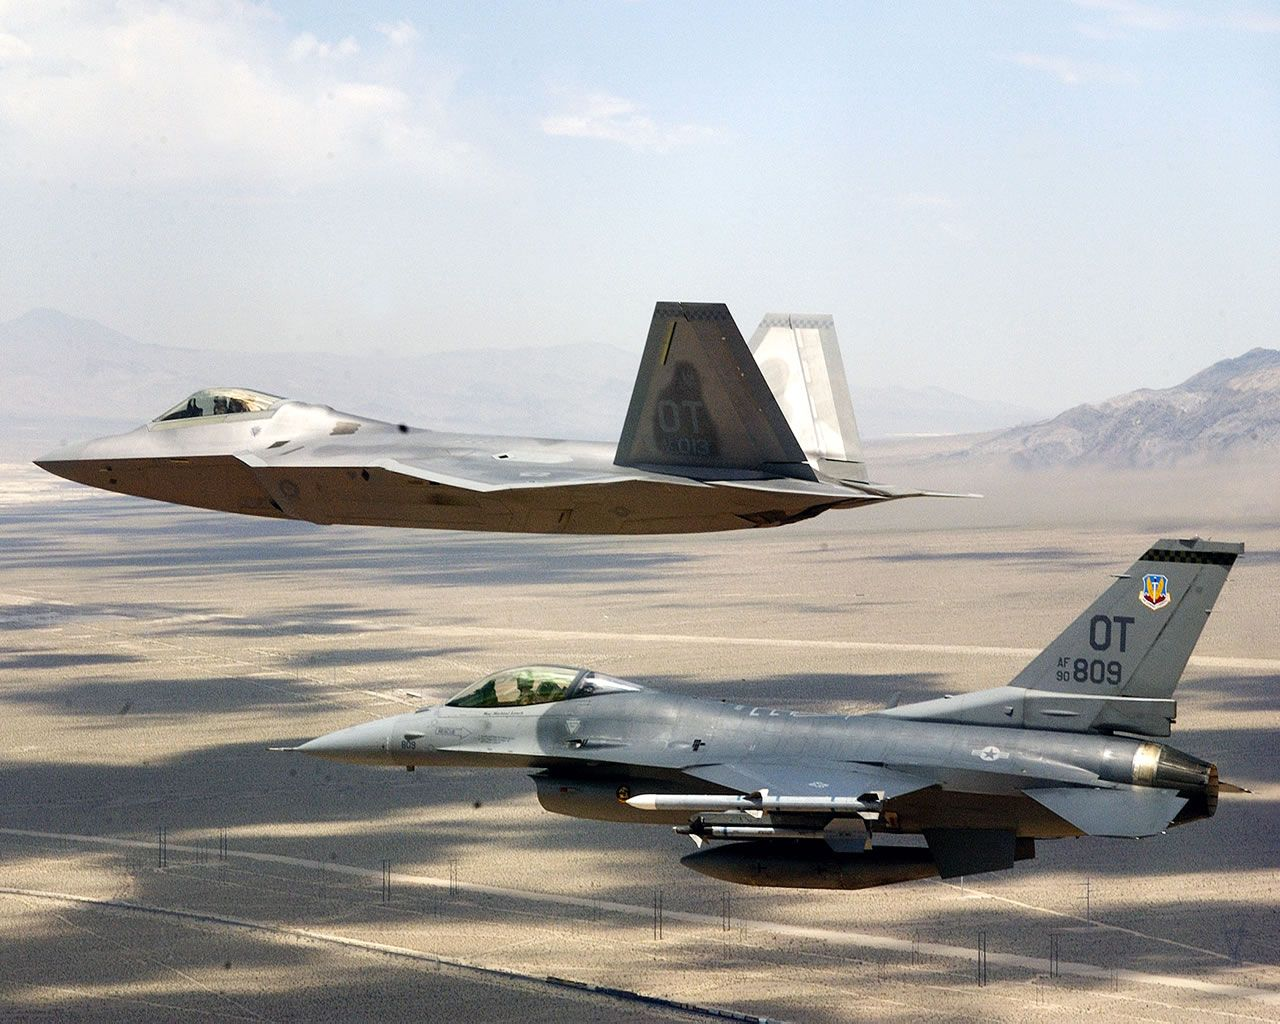 All Types f 22 raptor specs : 25 best F-22 RAPTOR images on Pinterest | Military aircraft ...